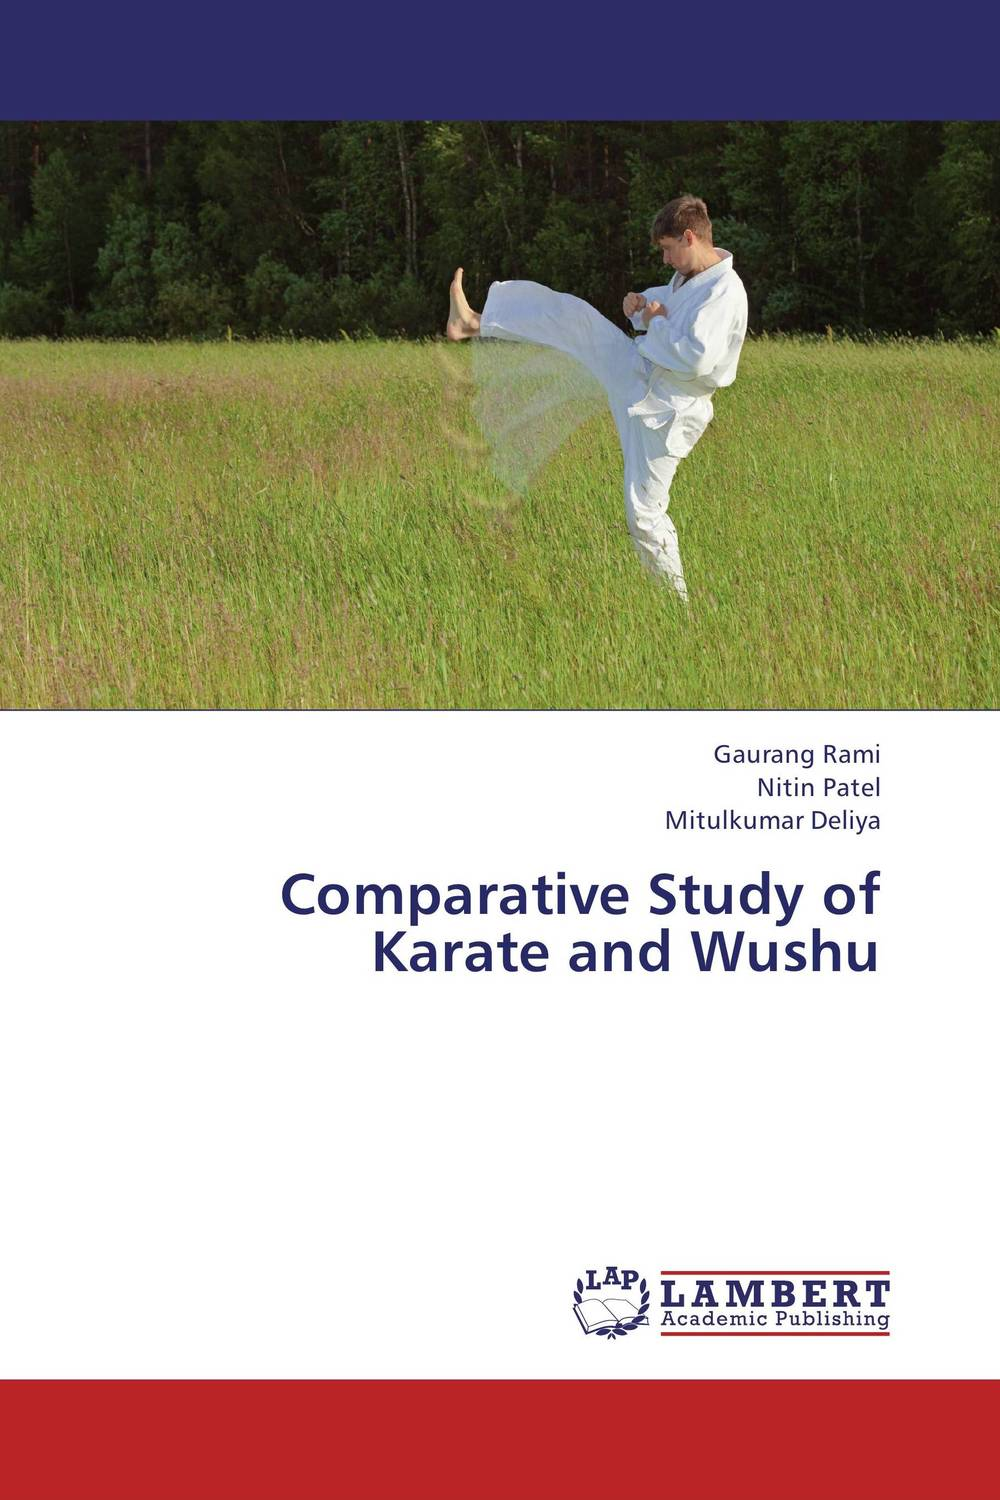 Comparative Study of Karate and Wushu health and physical fitness awareness status and academics